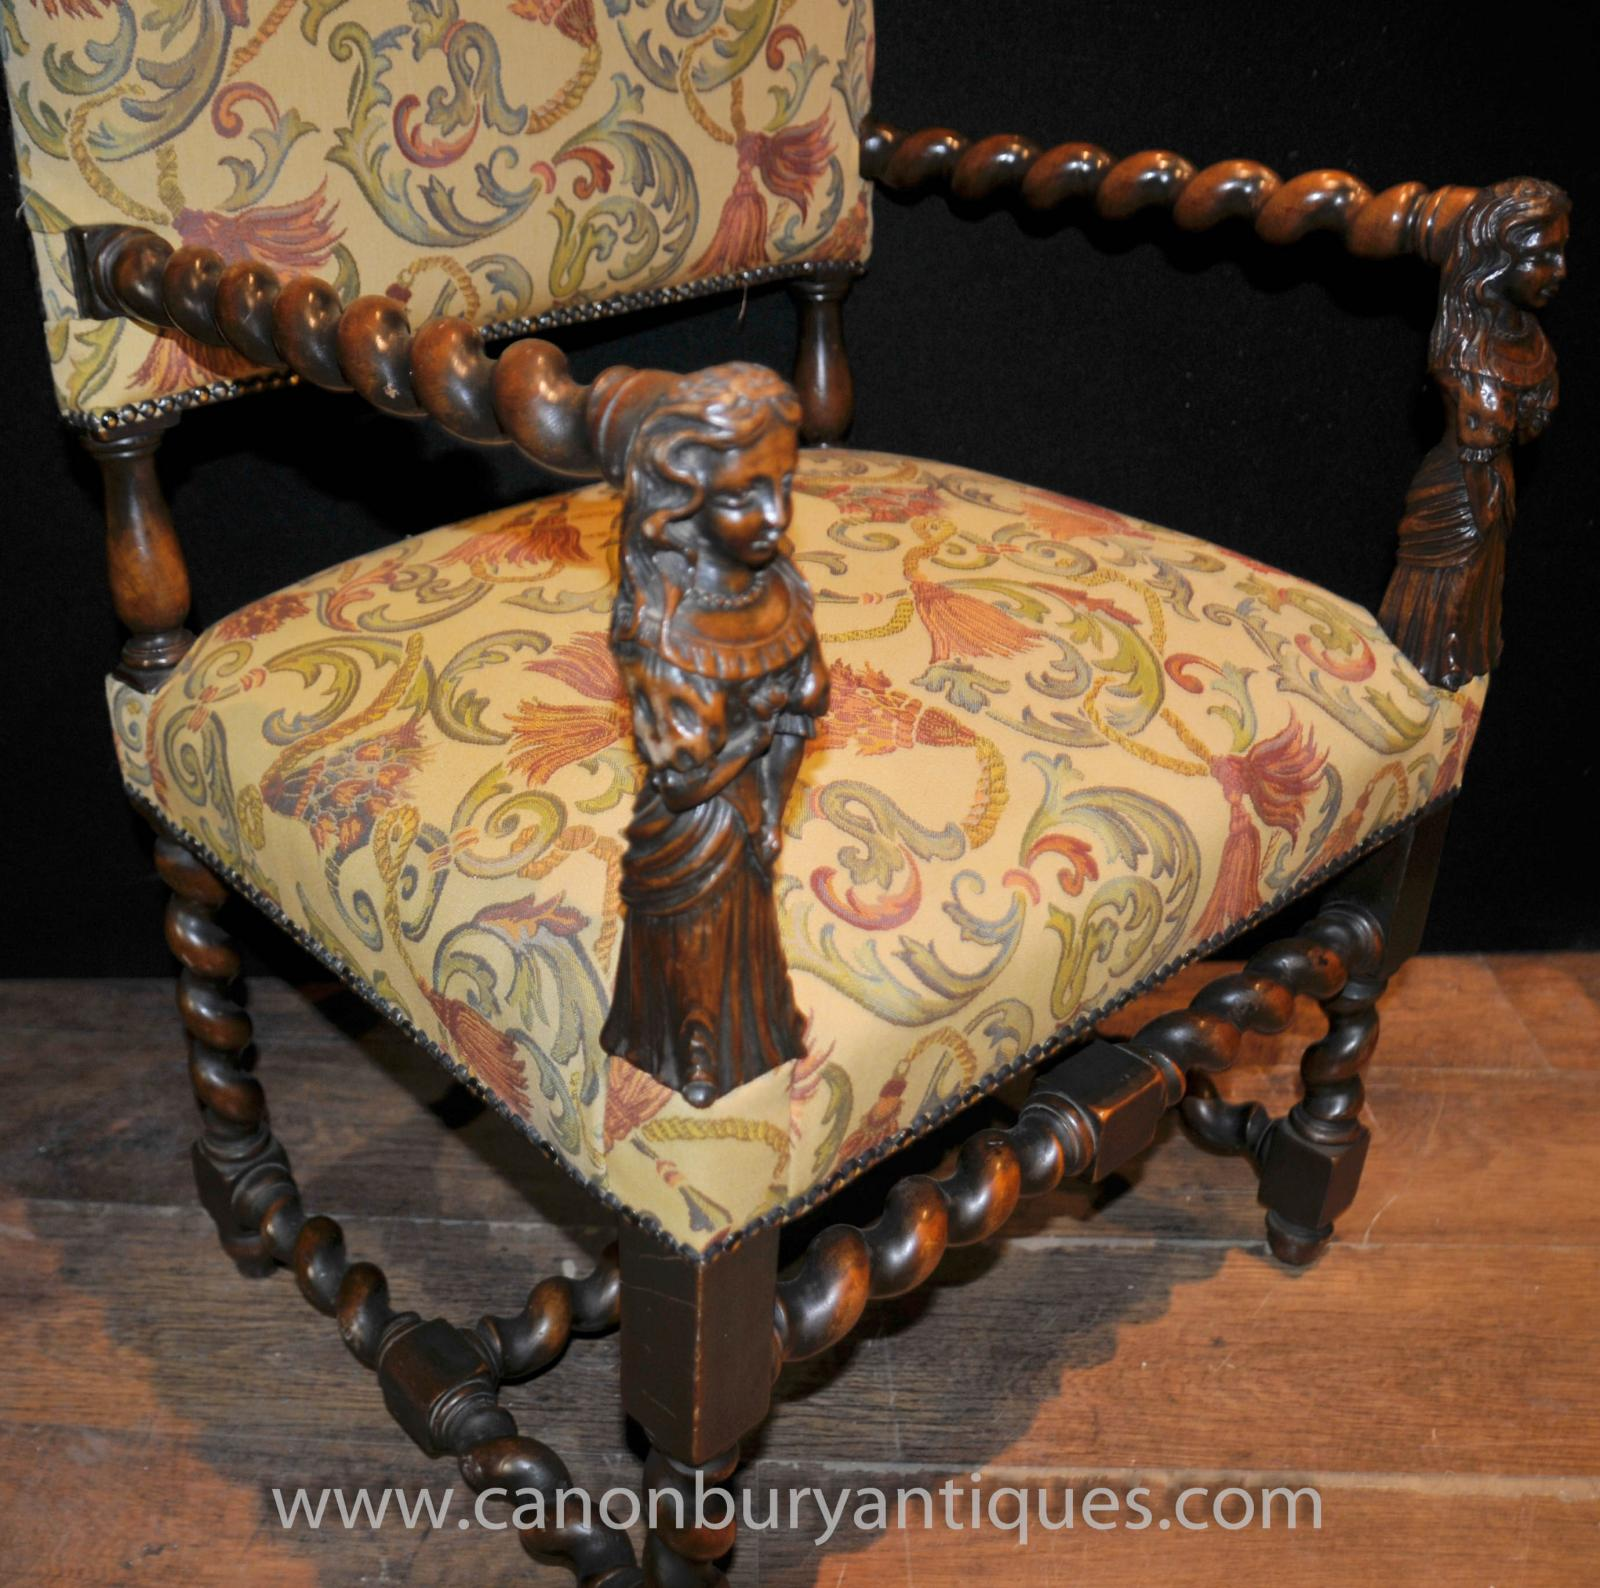 Antique italian chairs - Contact Us Viewing Goods